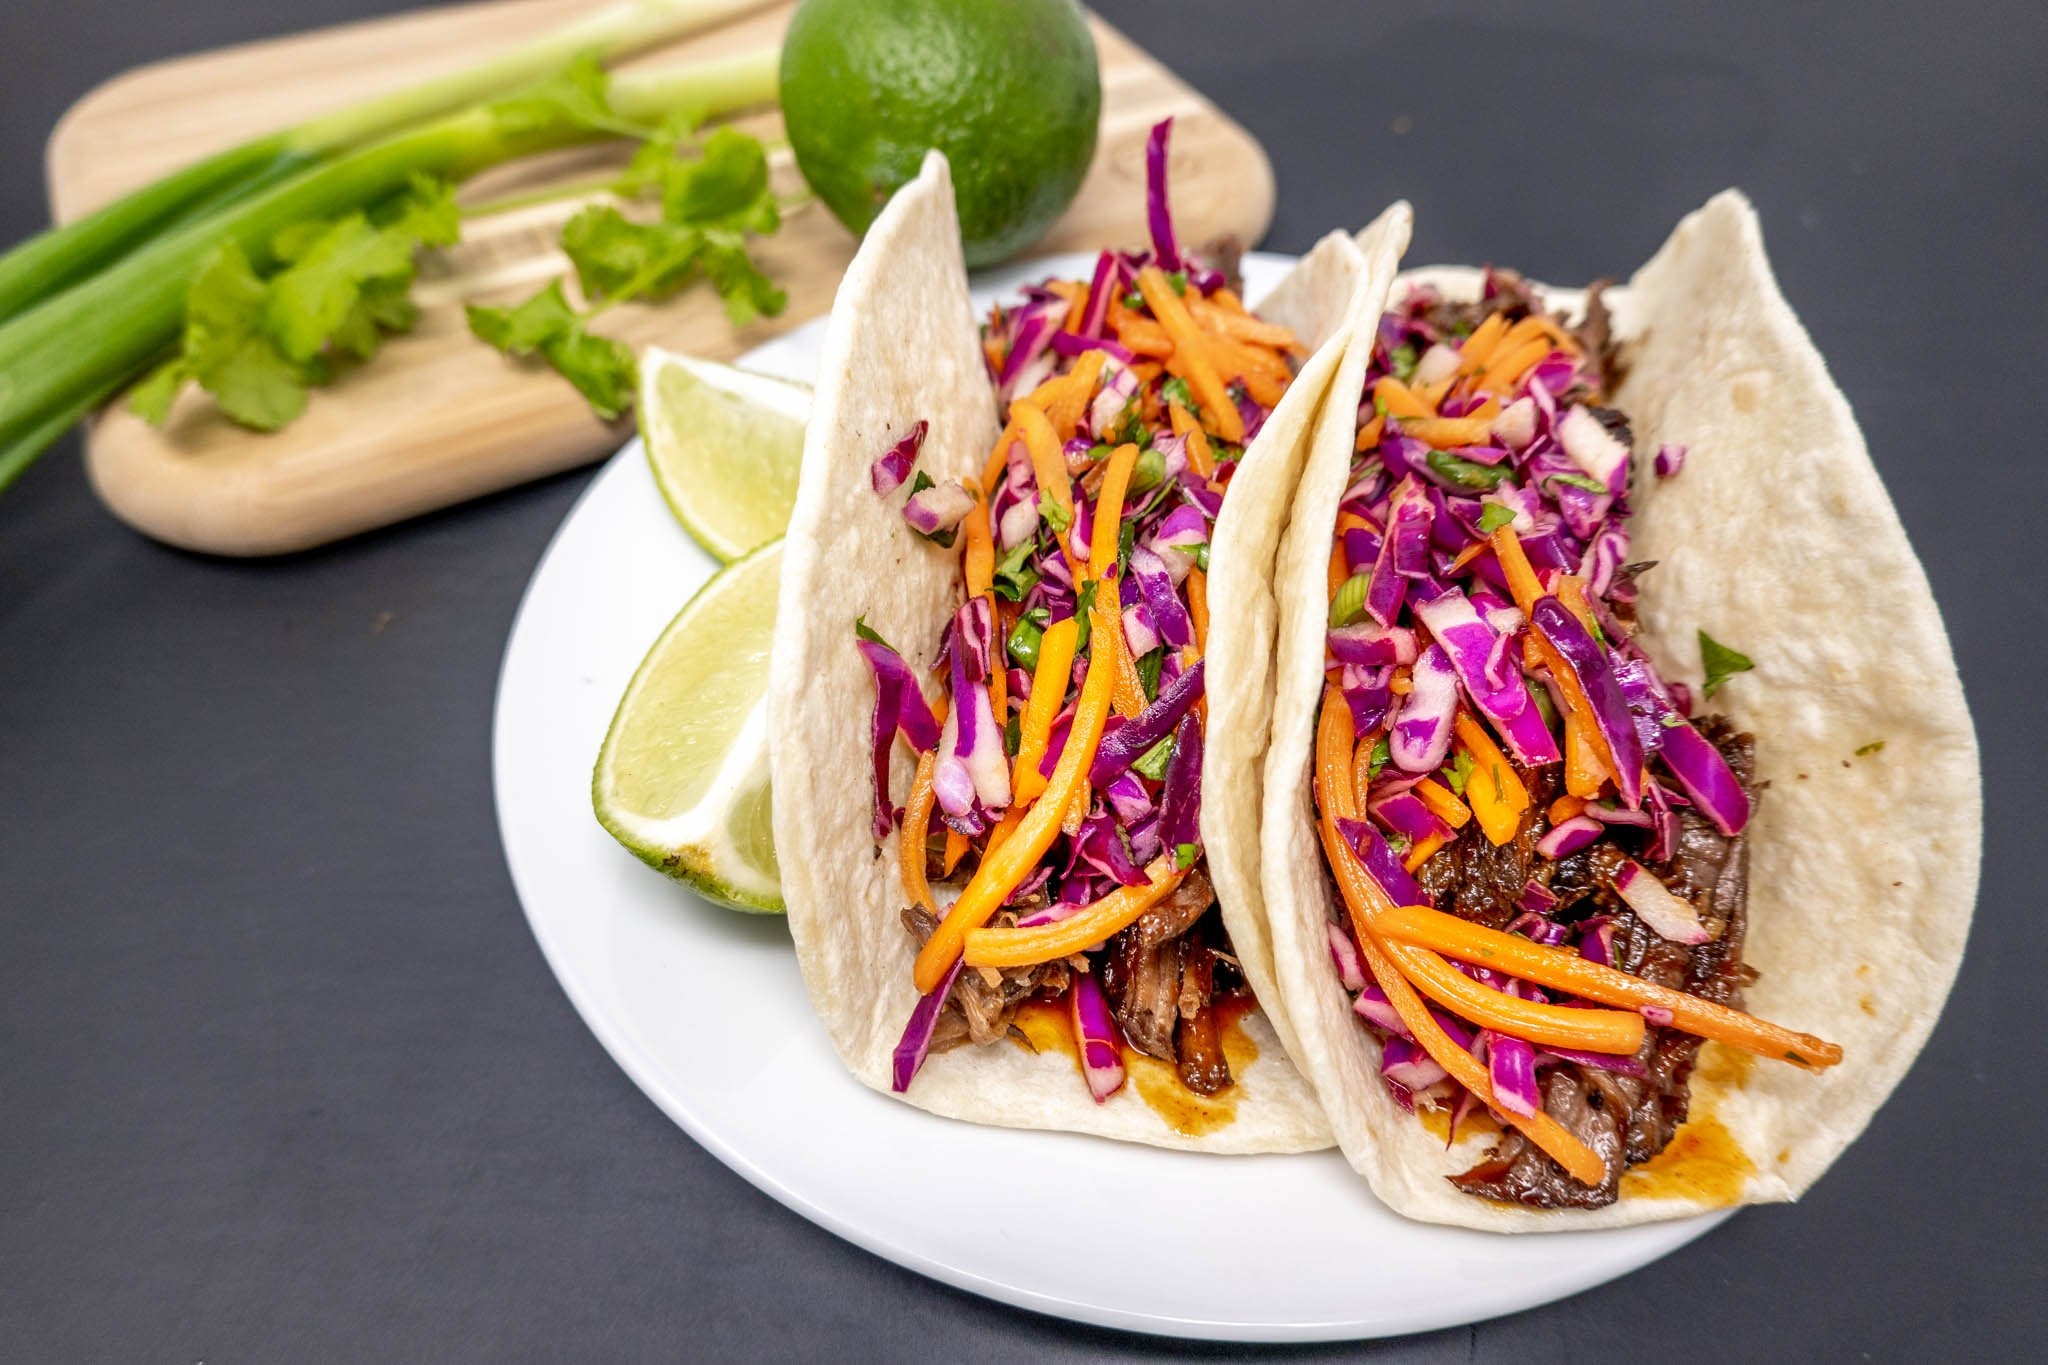 Tacos on a plate with limes and scallions